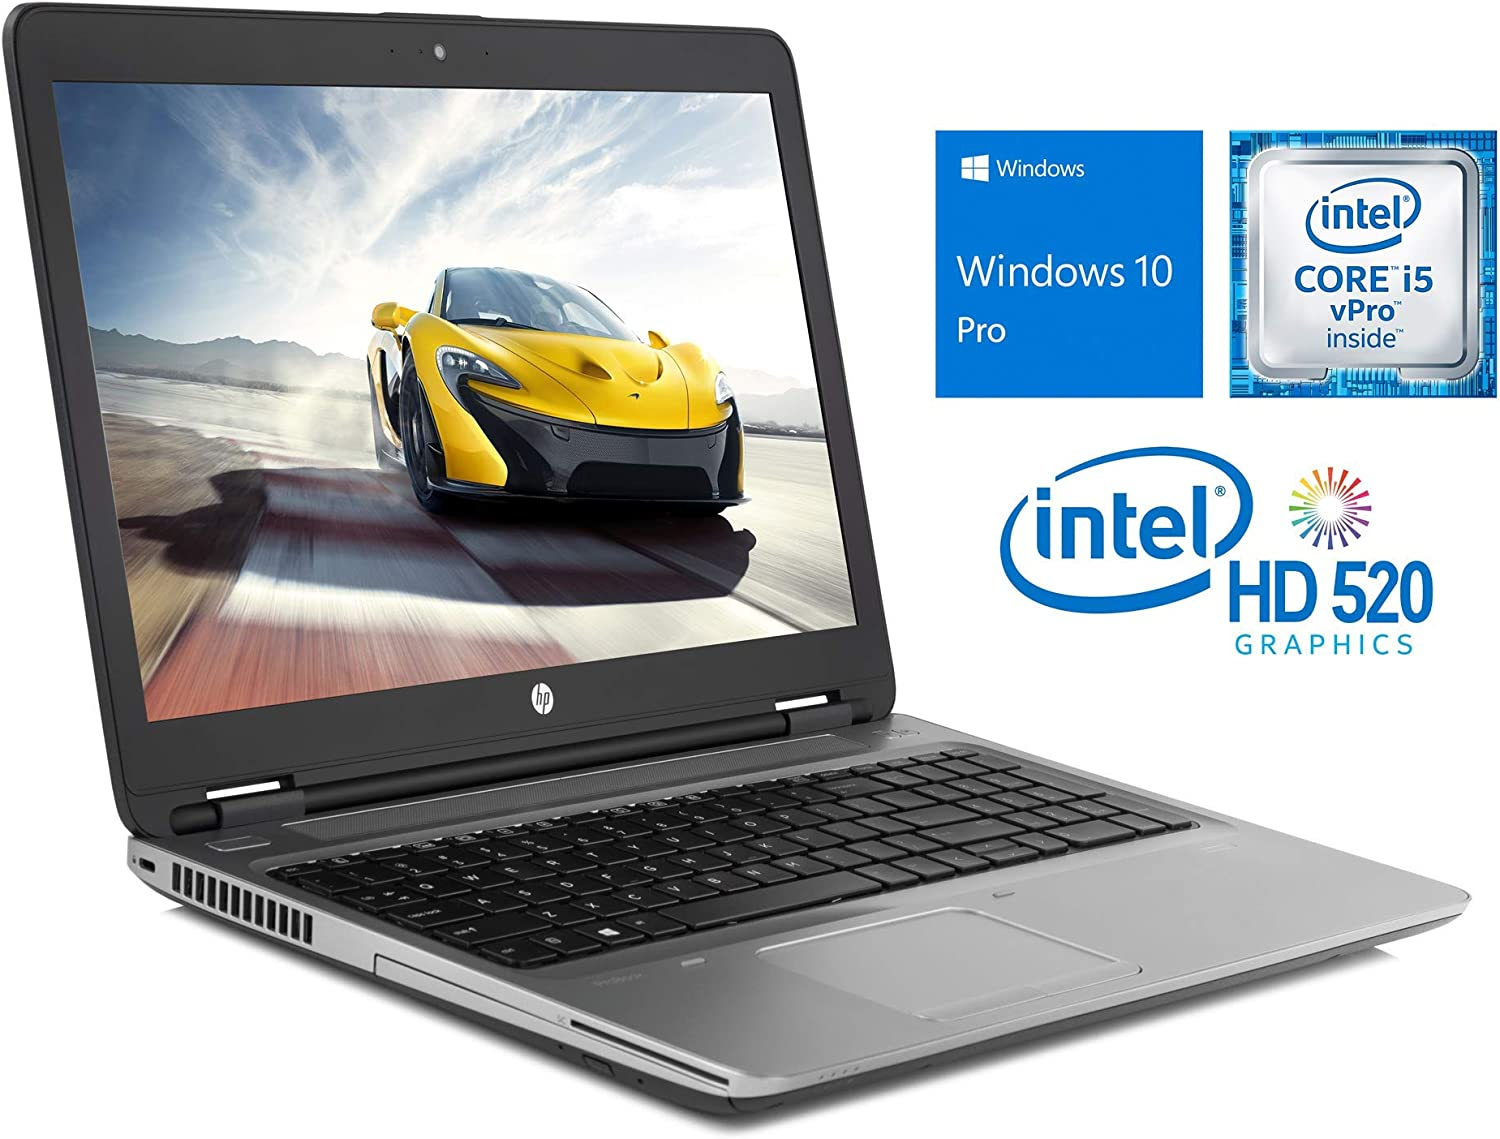 "HP ProBook 650 G2 Laptop, 15.6"" FHD Display, Intel Core i5-6300U Upto 3.0GHz, 32GB RAM, 256GB NVMe SSD, DVDRW, VGA, DisplayPort, Card Reader, Wi-Fi, Bluetooth, Windows 10 Pro (Renewed)"